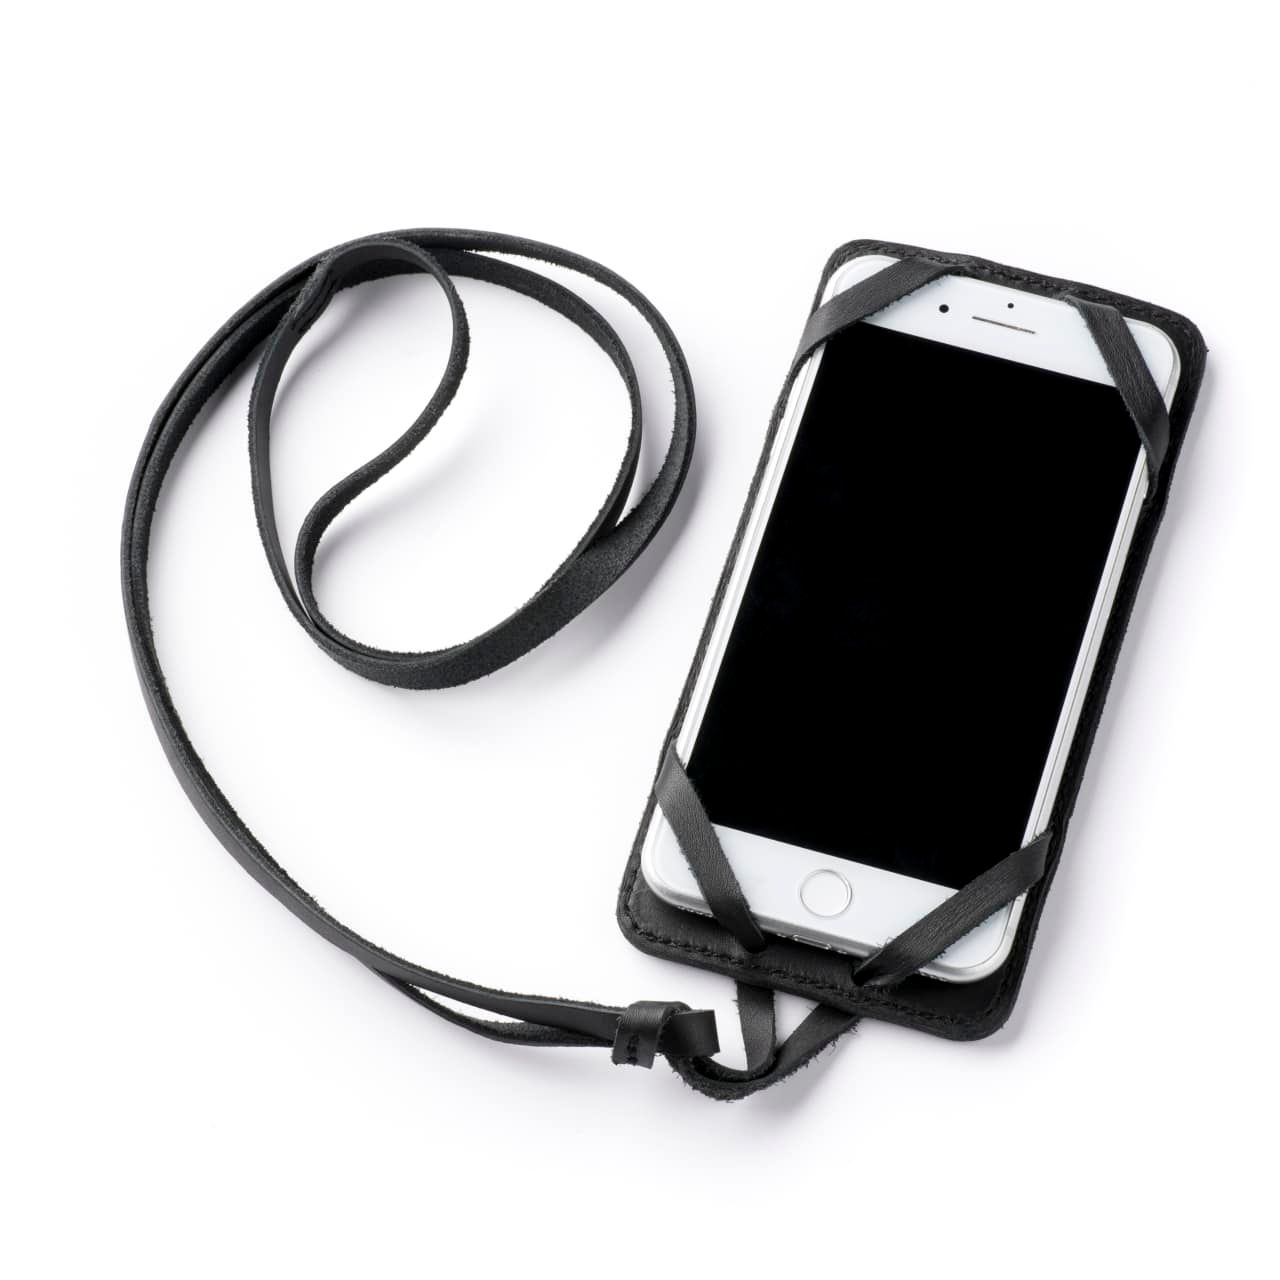 Leather iPhone 8+ Case in Color Black with the Lanyard attached front angle with phone in the case